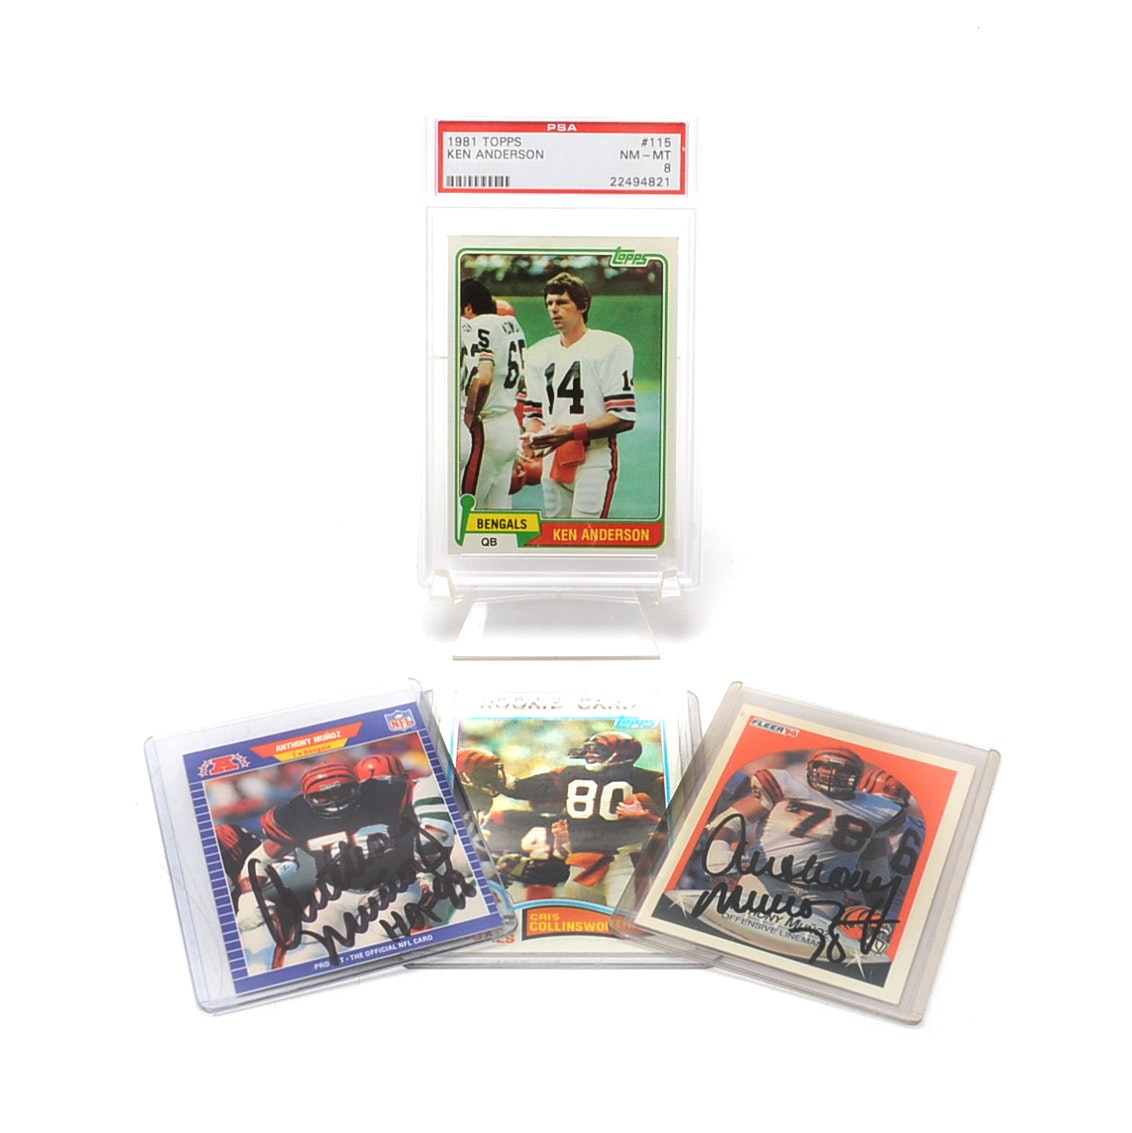 Cincinnati Bengals Football Cards, Two Signed By Munoz